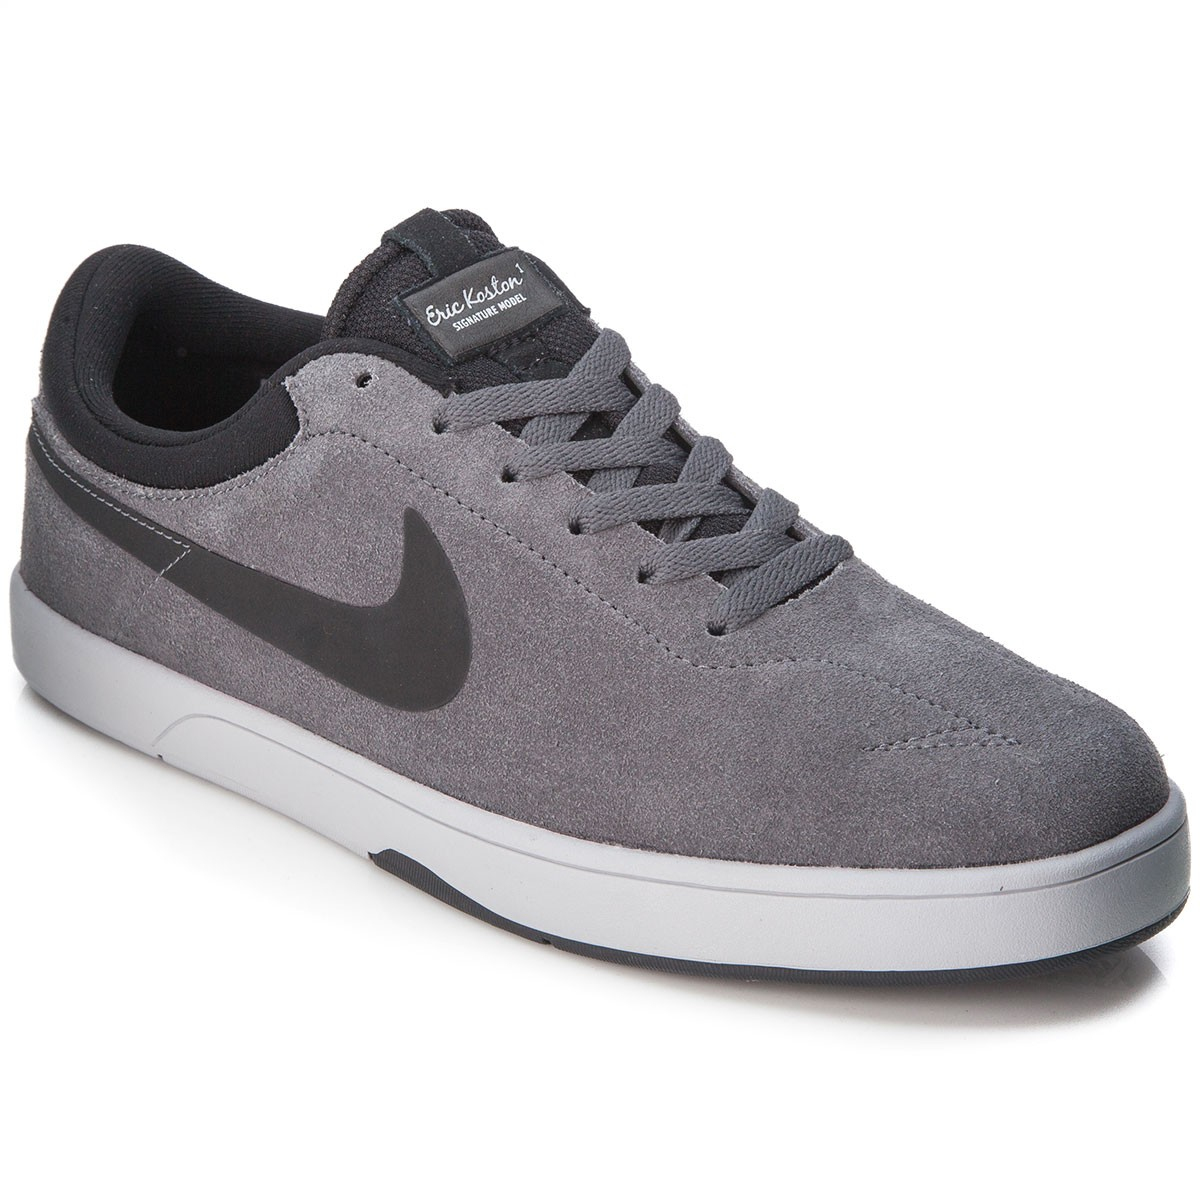 Nike SB Zoom Eric Koston Shoes  Dark GreyWolf GreyBlack  100